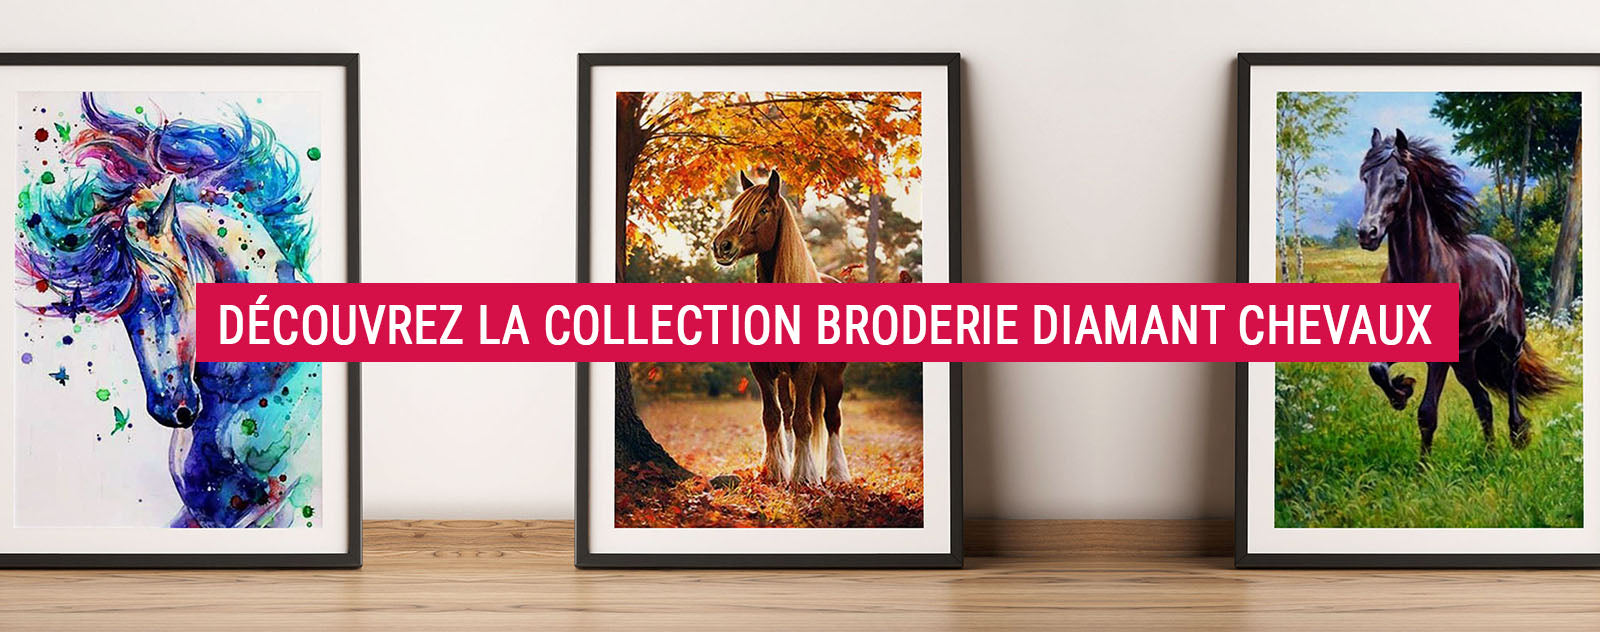 Collection Broderie Diamant Chevaux